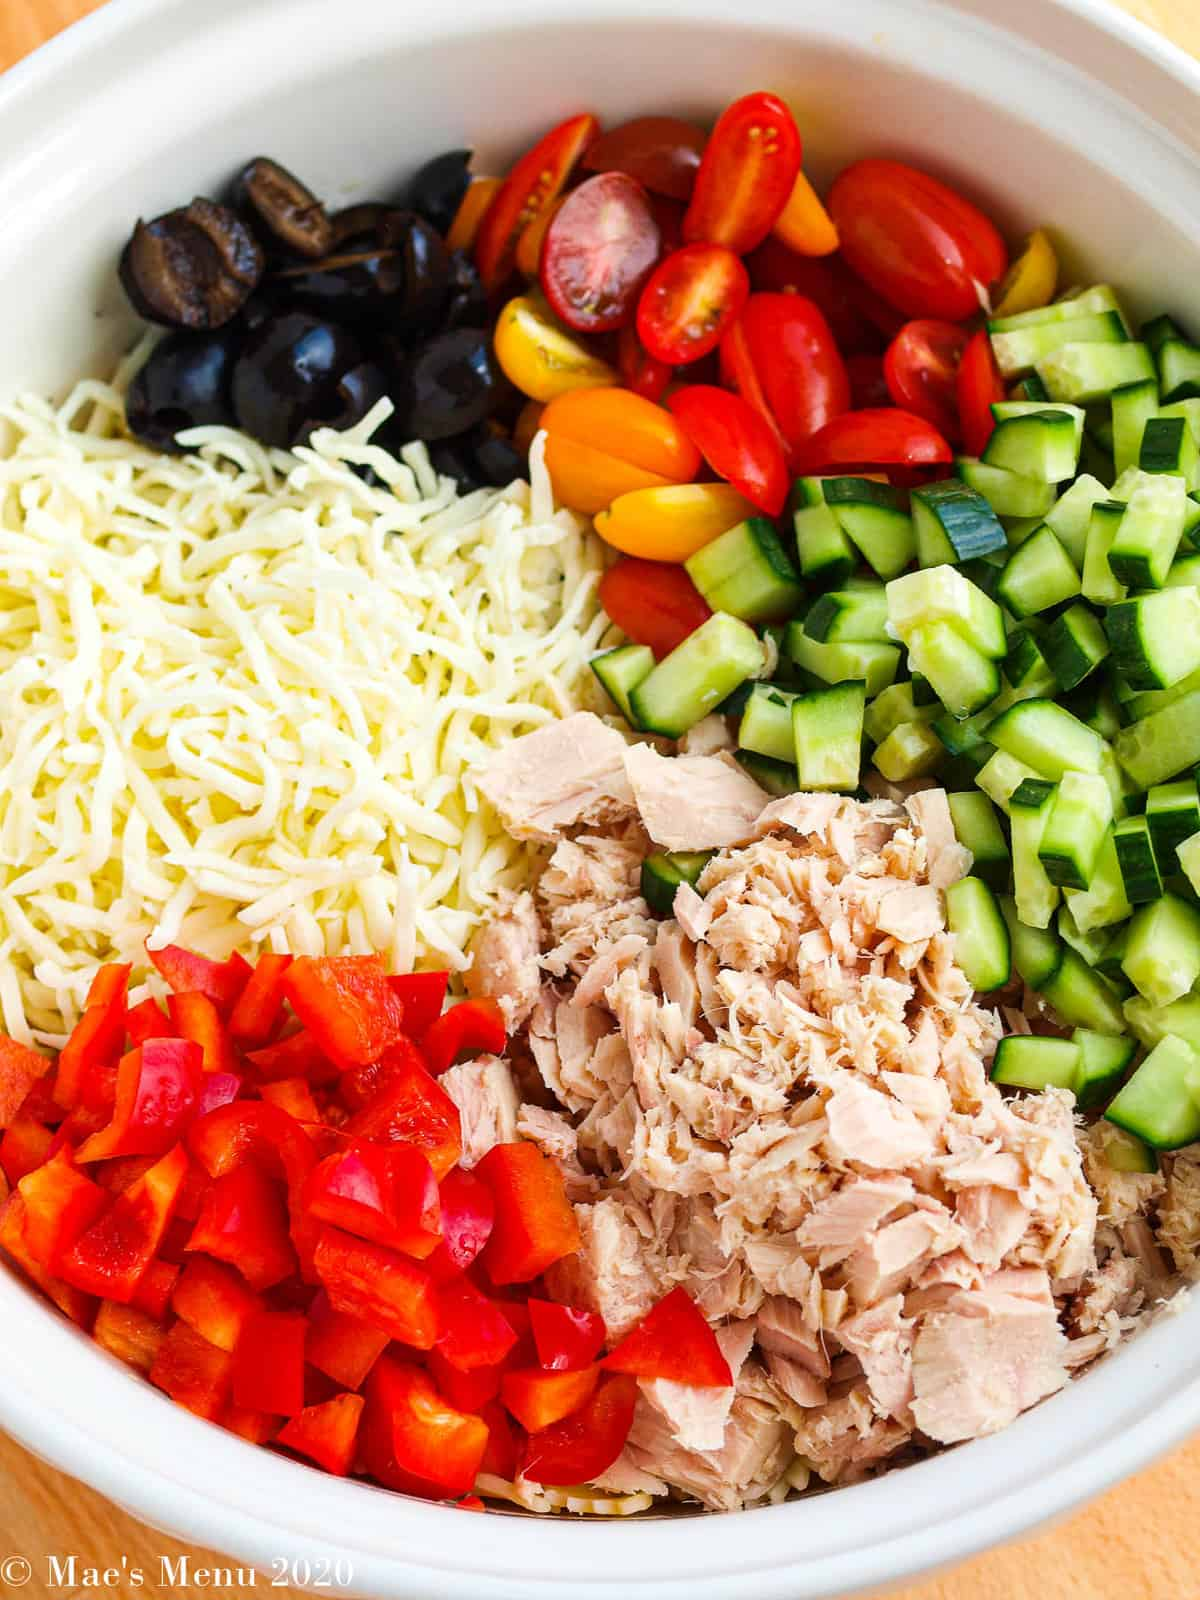 An overhead shot of a bowl of tuna pasta salad before stirring.